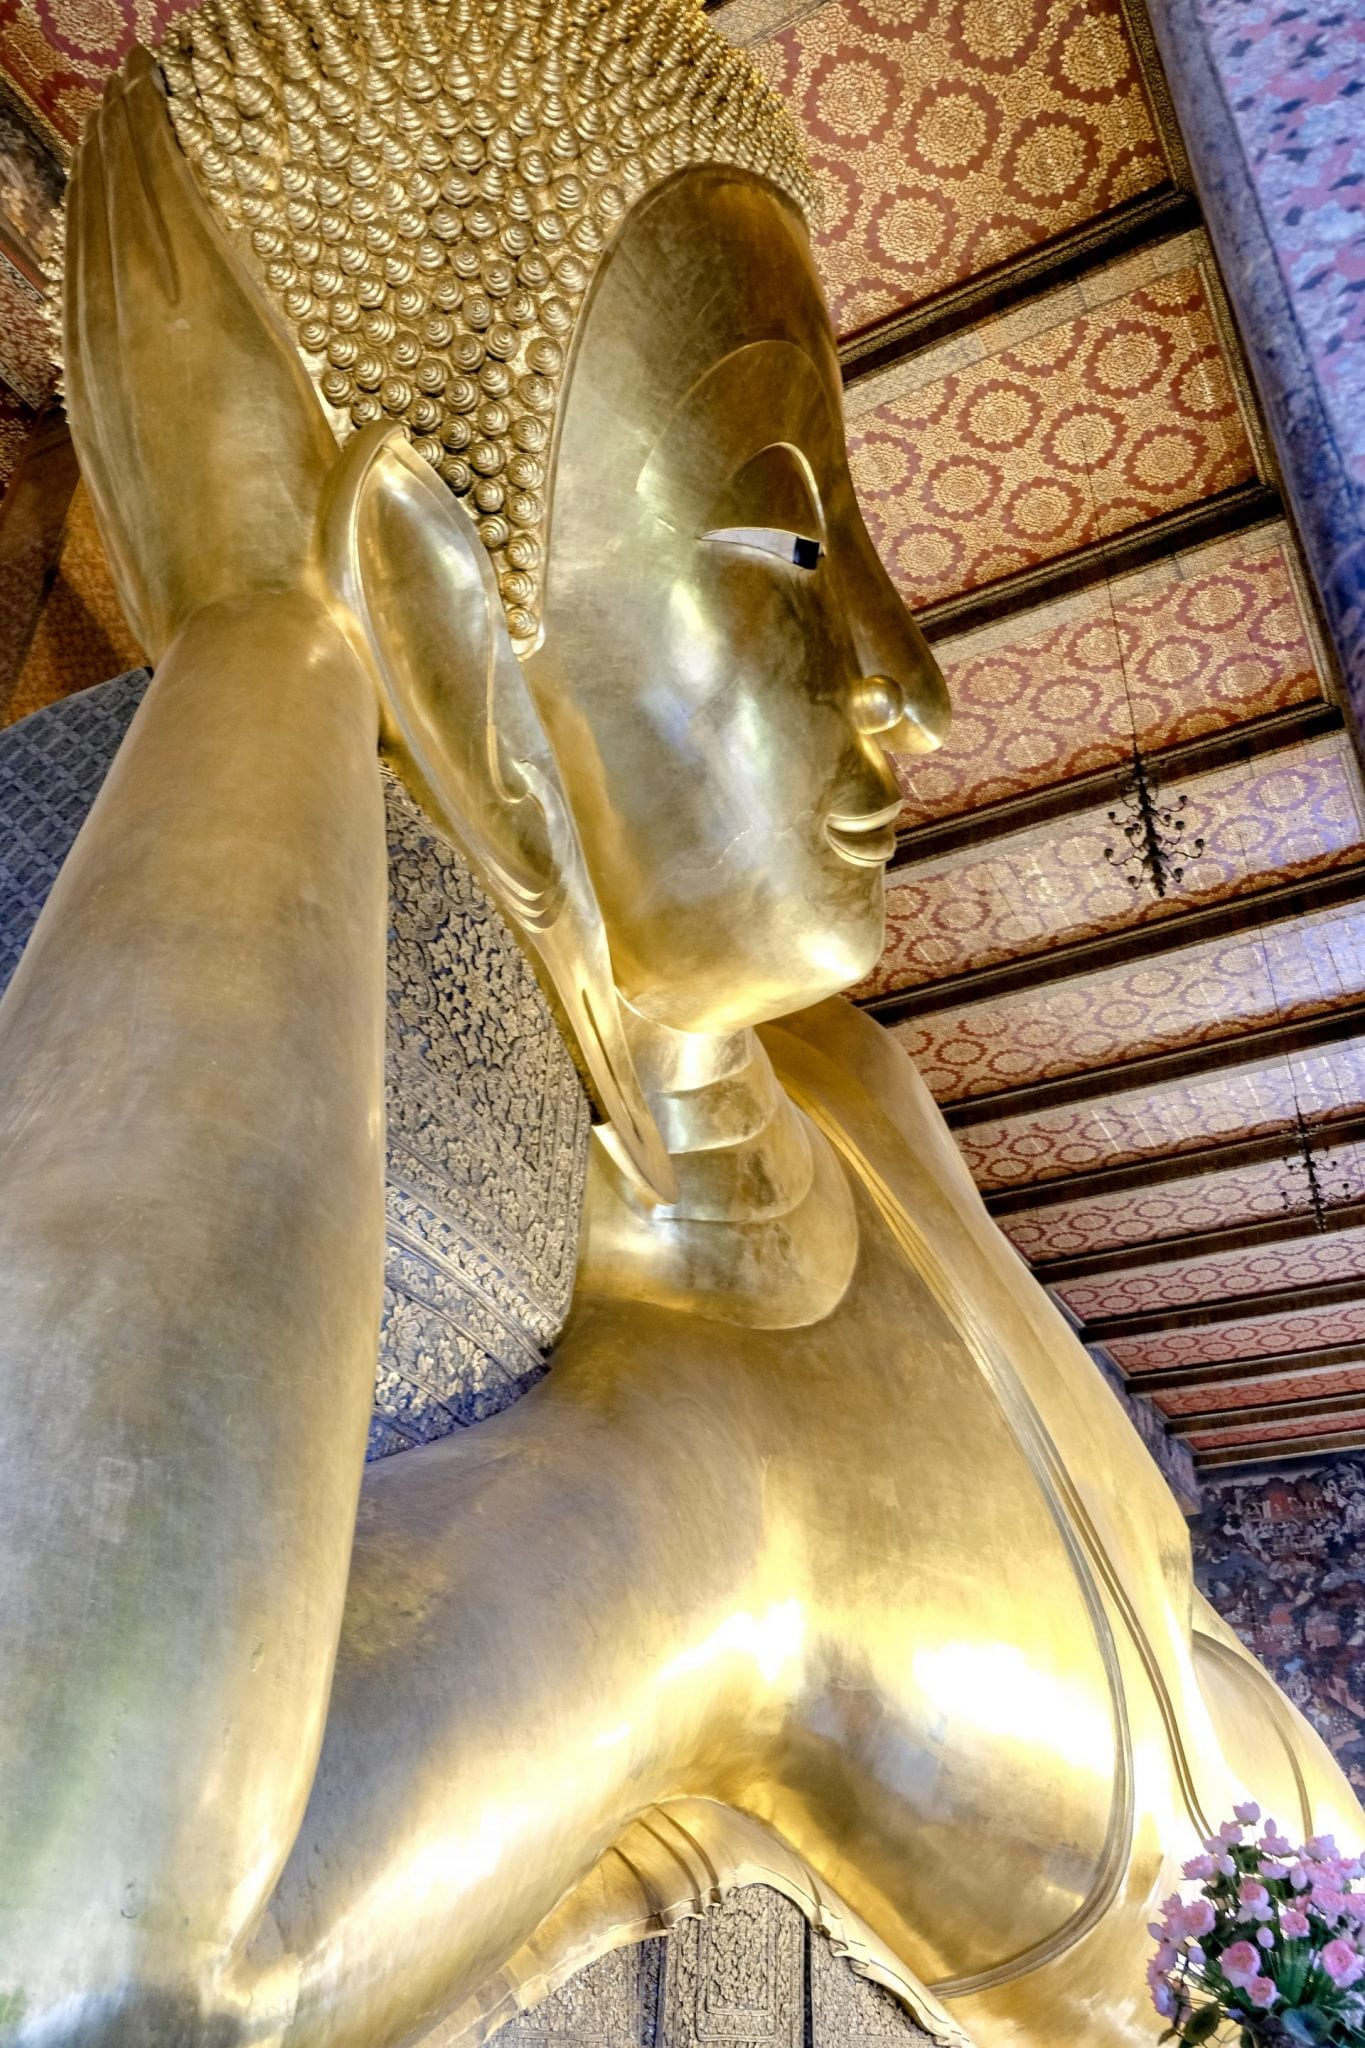 temple of the reclining buddha bangkok